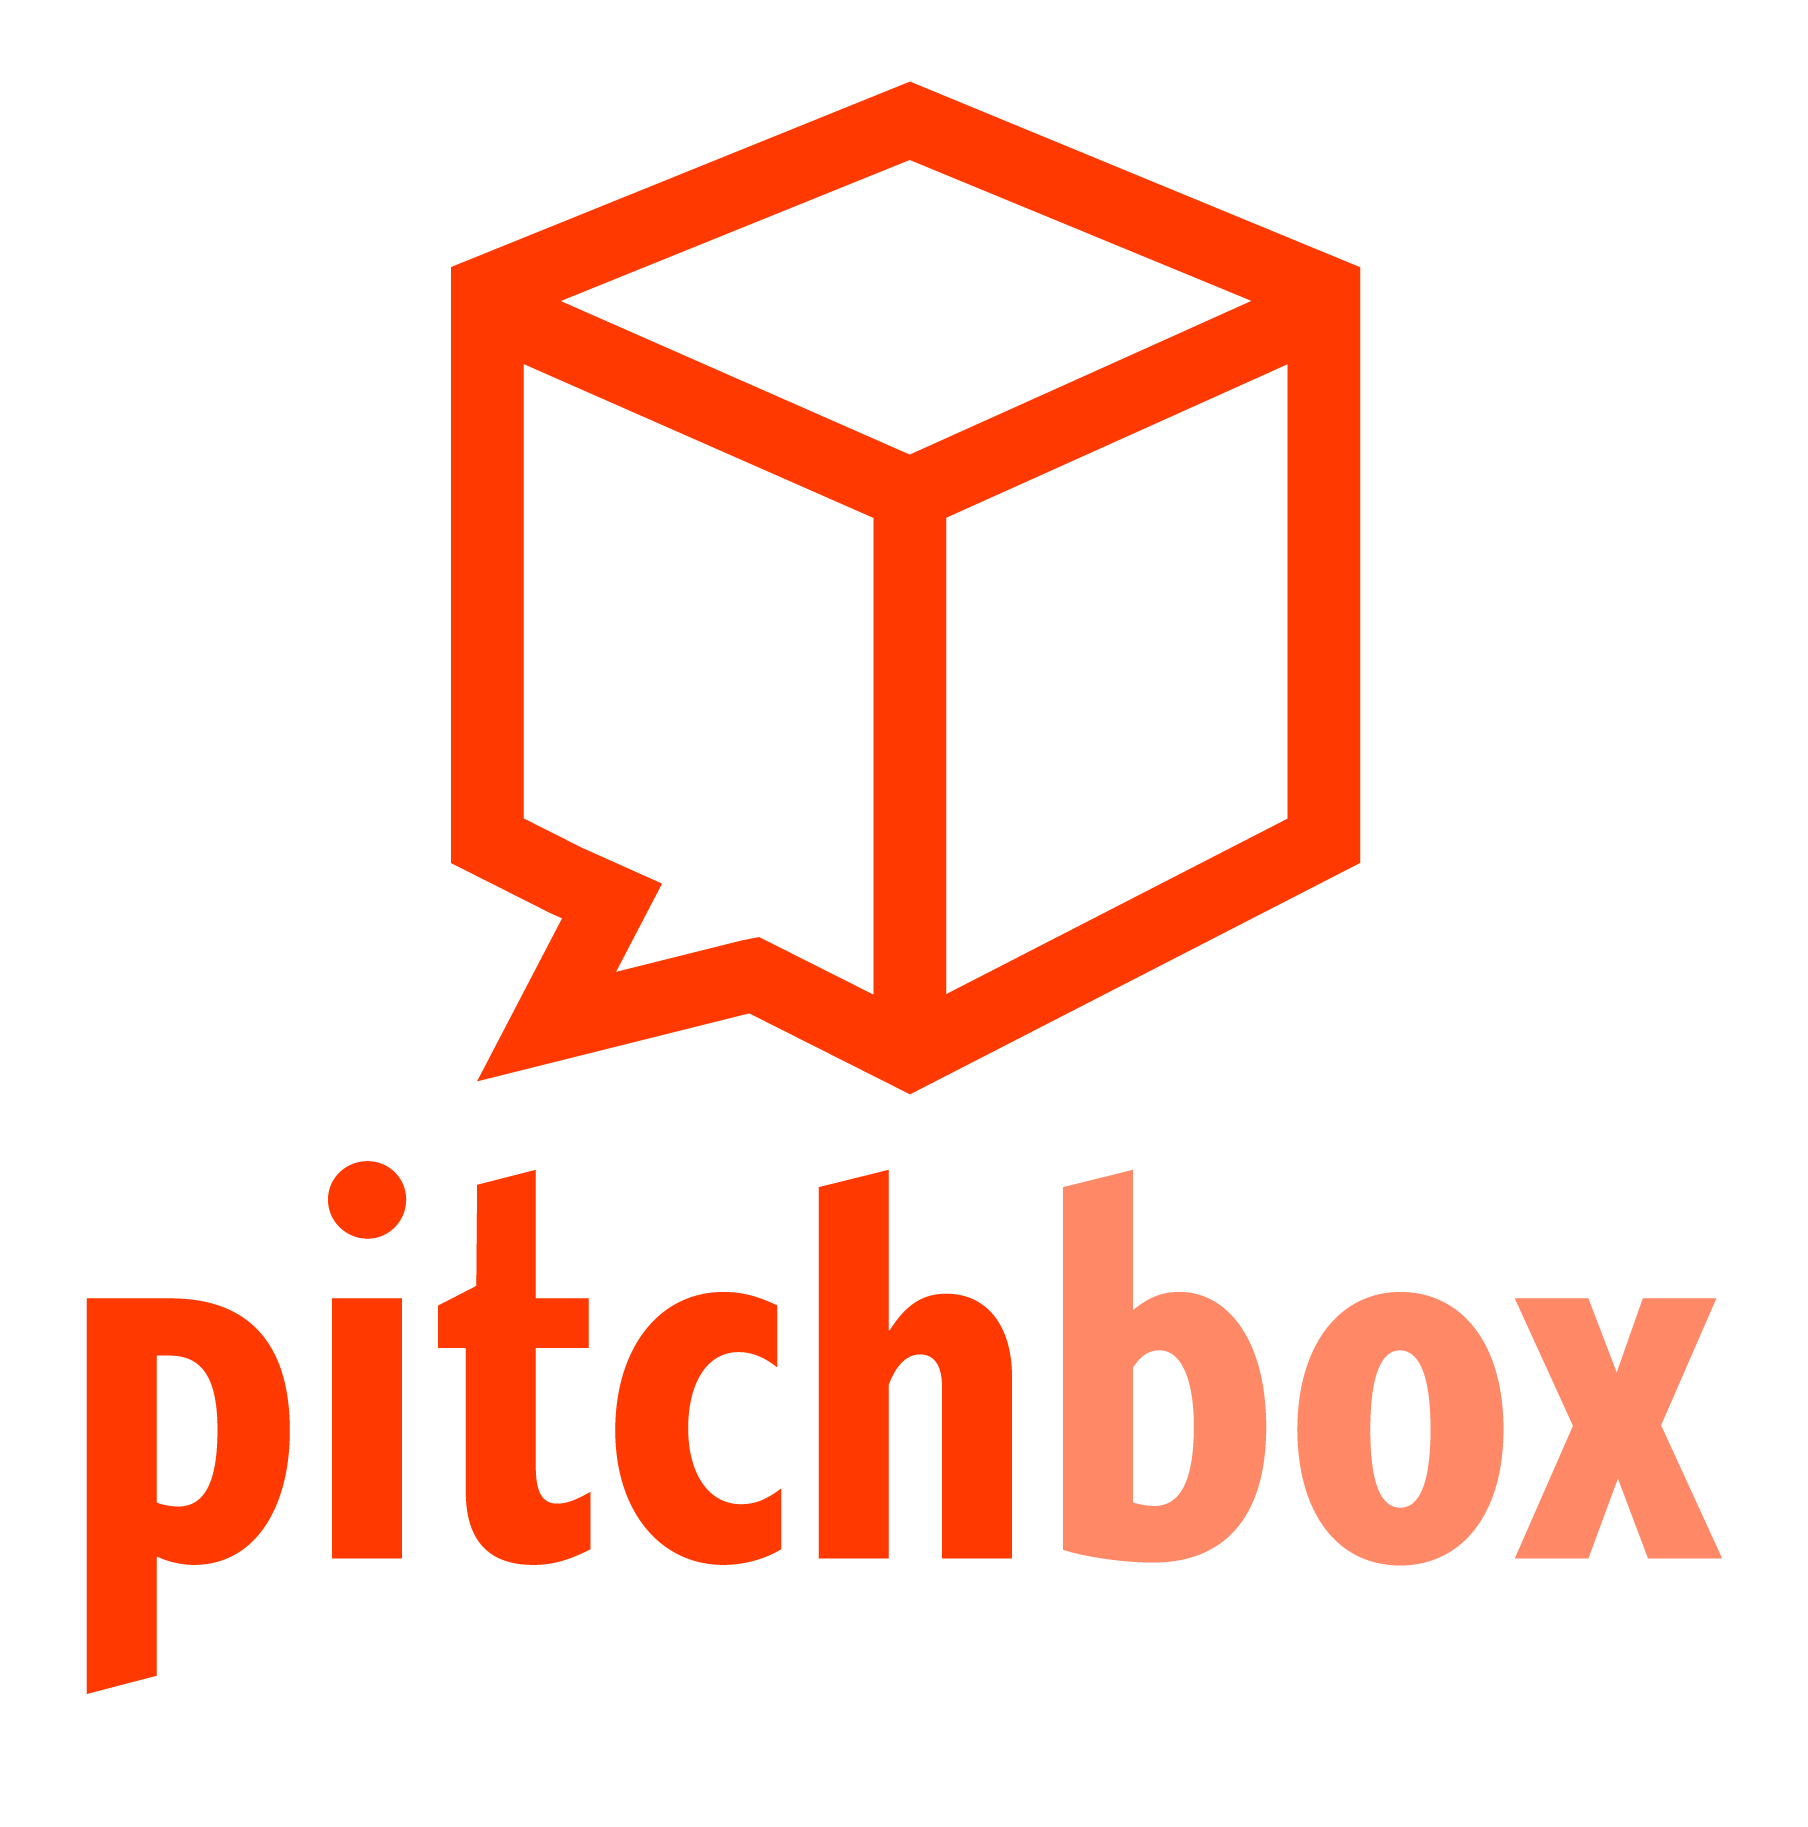 PITCHBOX_mobile-01-01